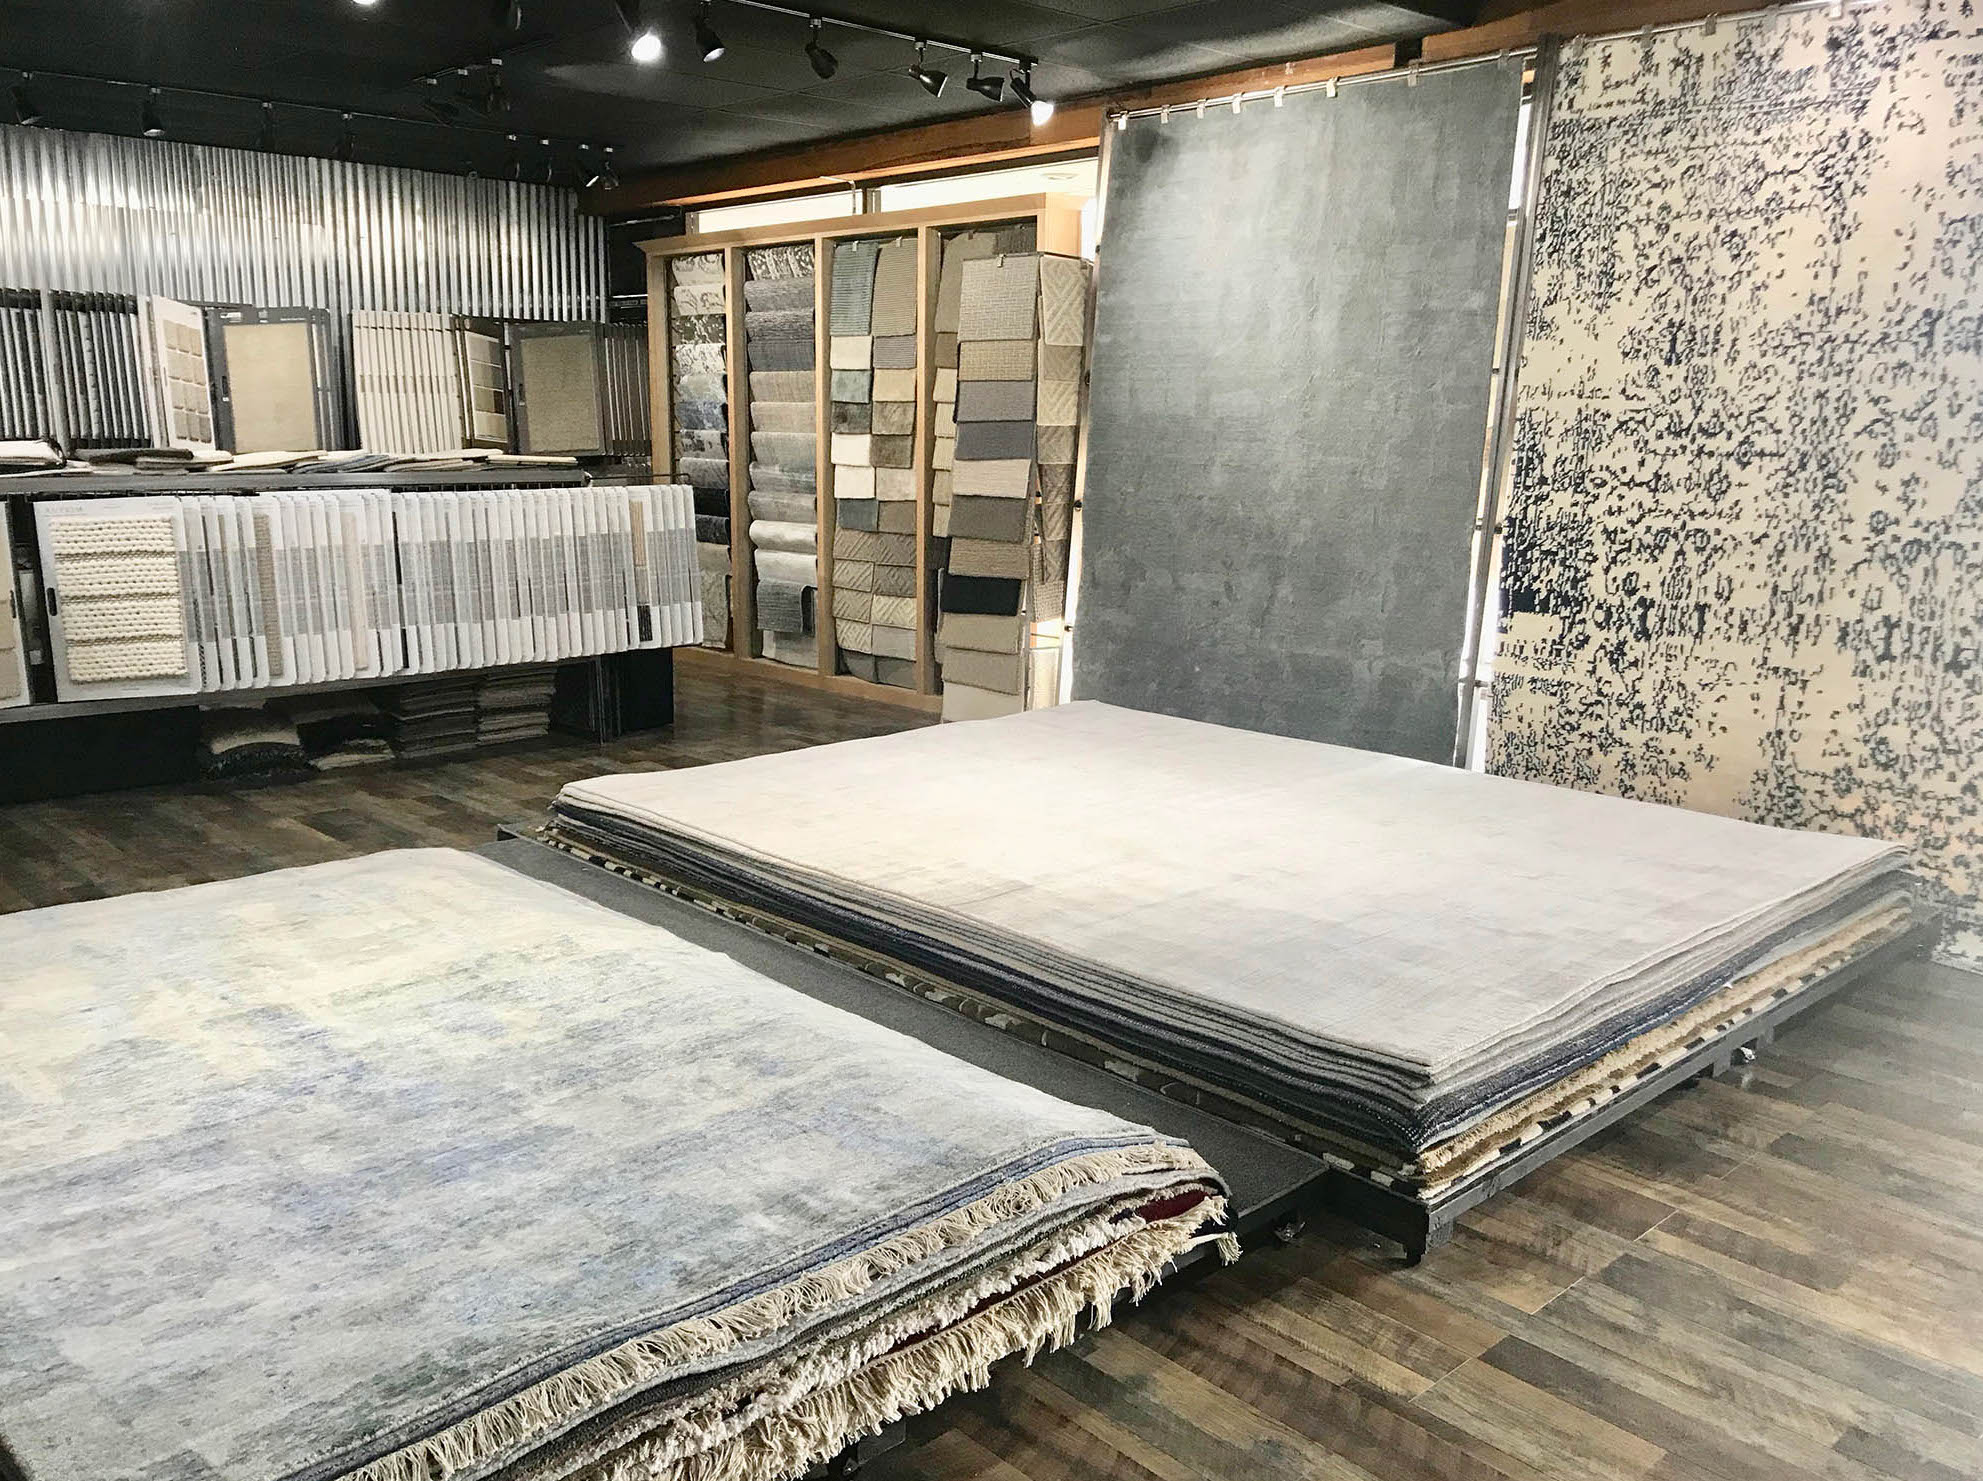 Refined Rug Restoration Rug Cleaning and Repair orange county, ca rug store online showroom oriental persian modern traditional area rugs